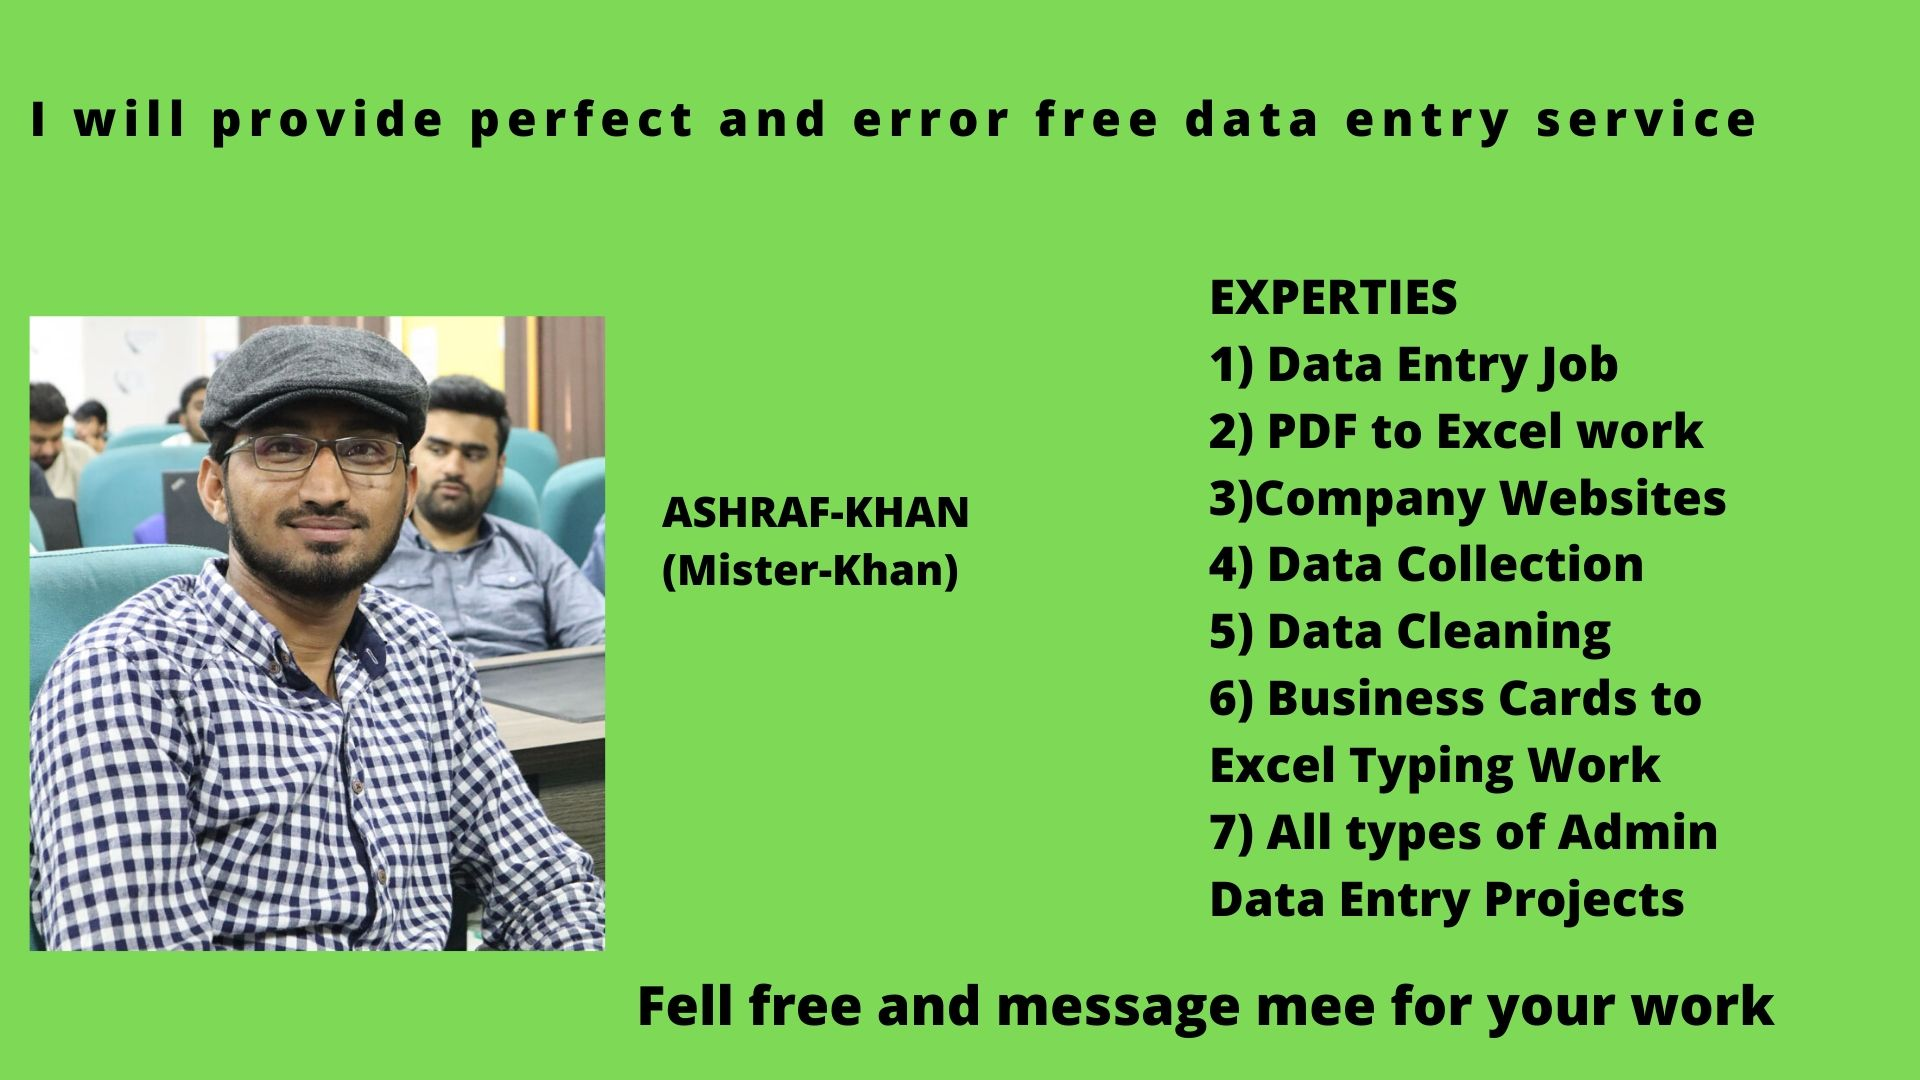 provide perfect and error free data entry service